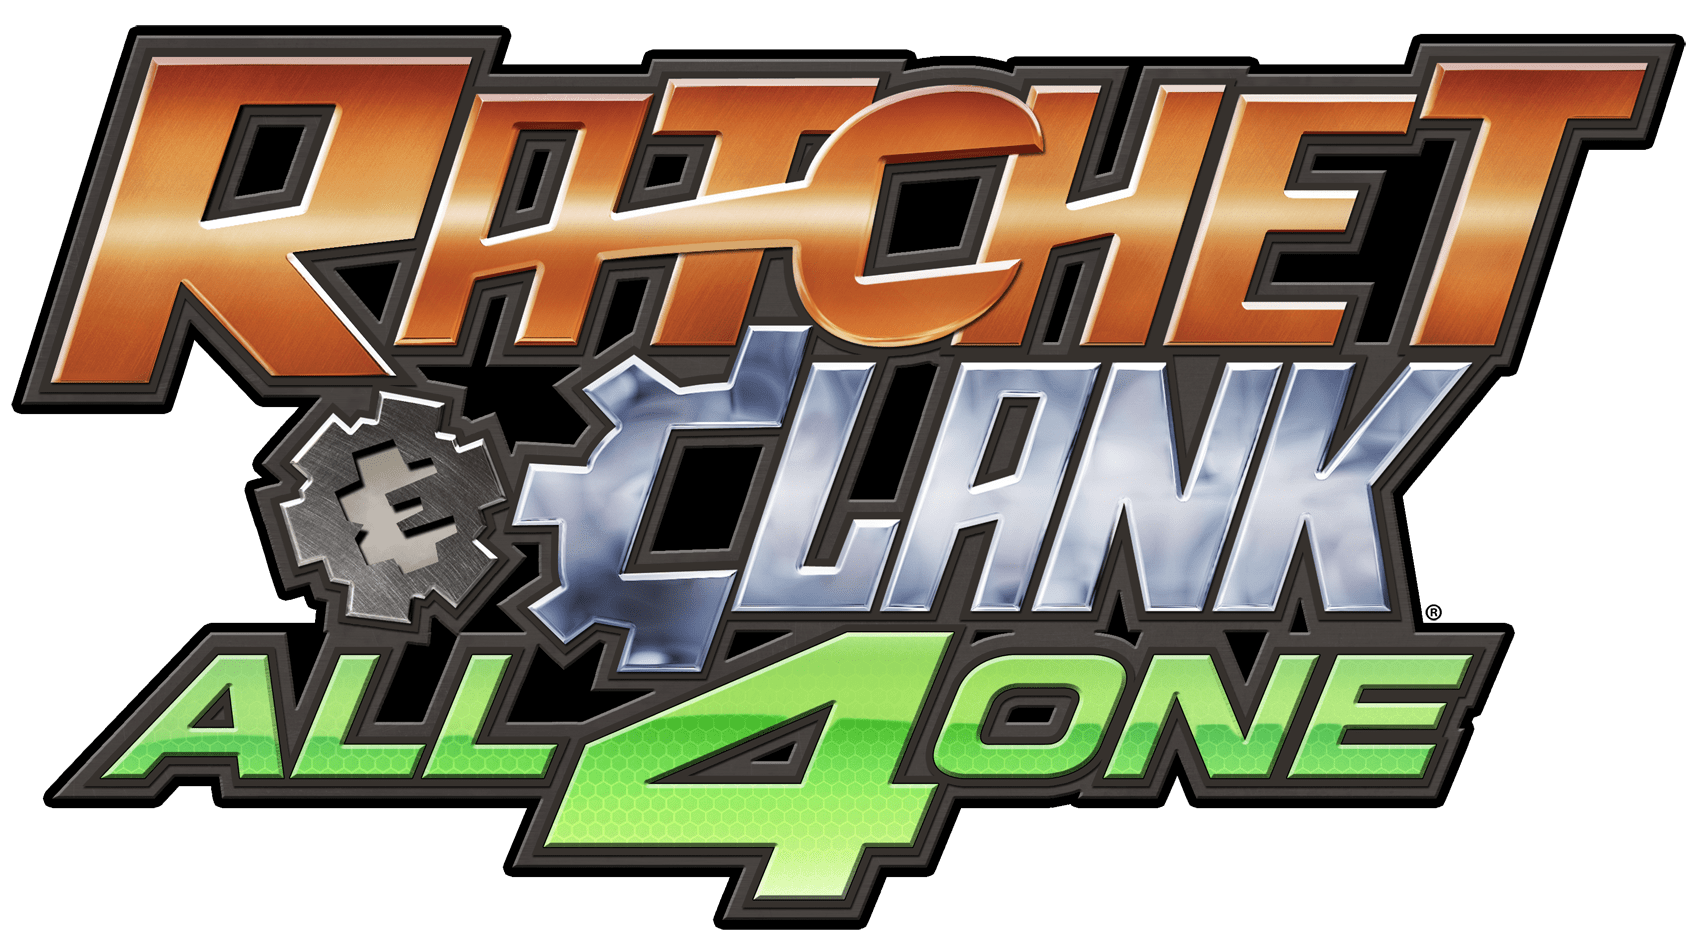 Test : Ratchet & Clank All 4 One sur PS3